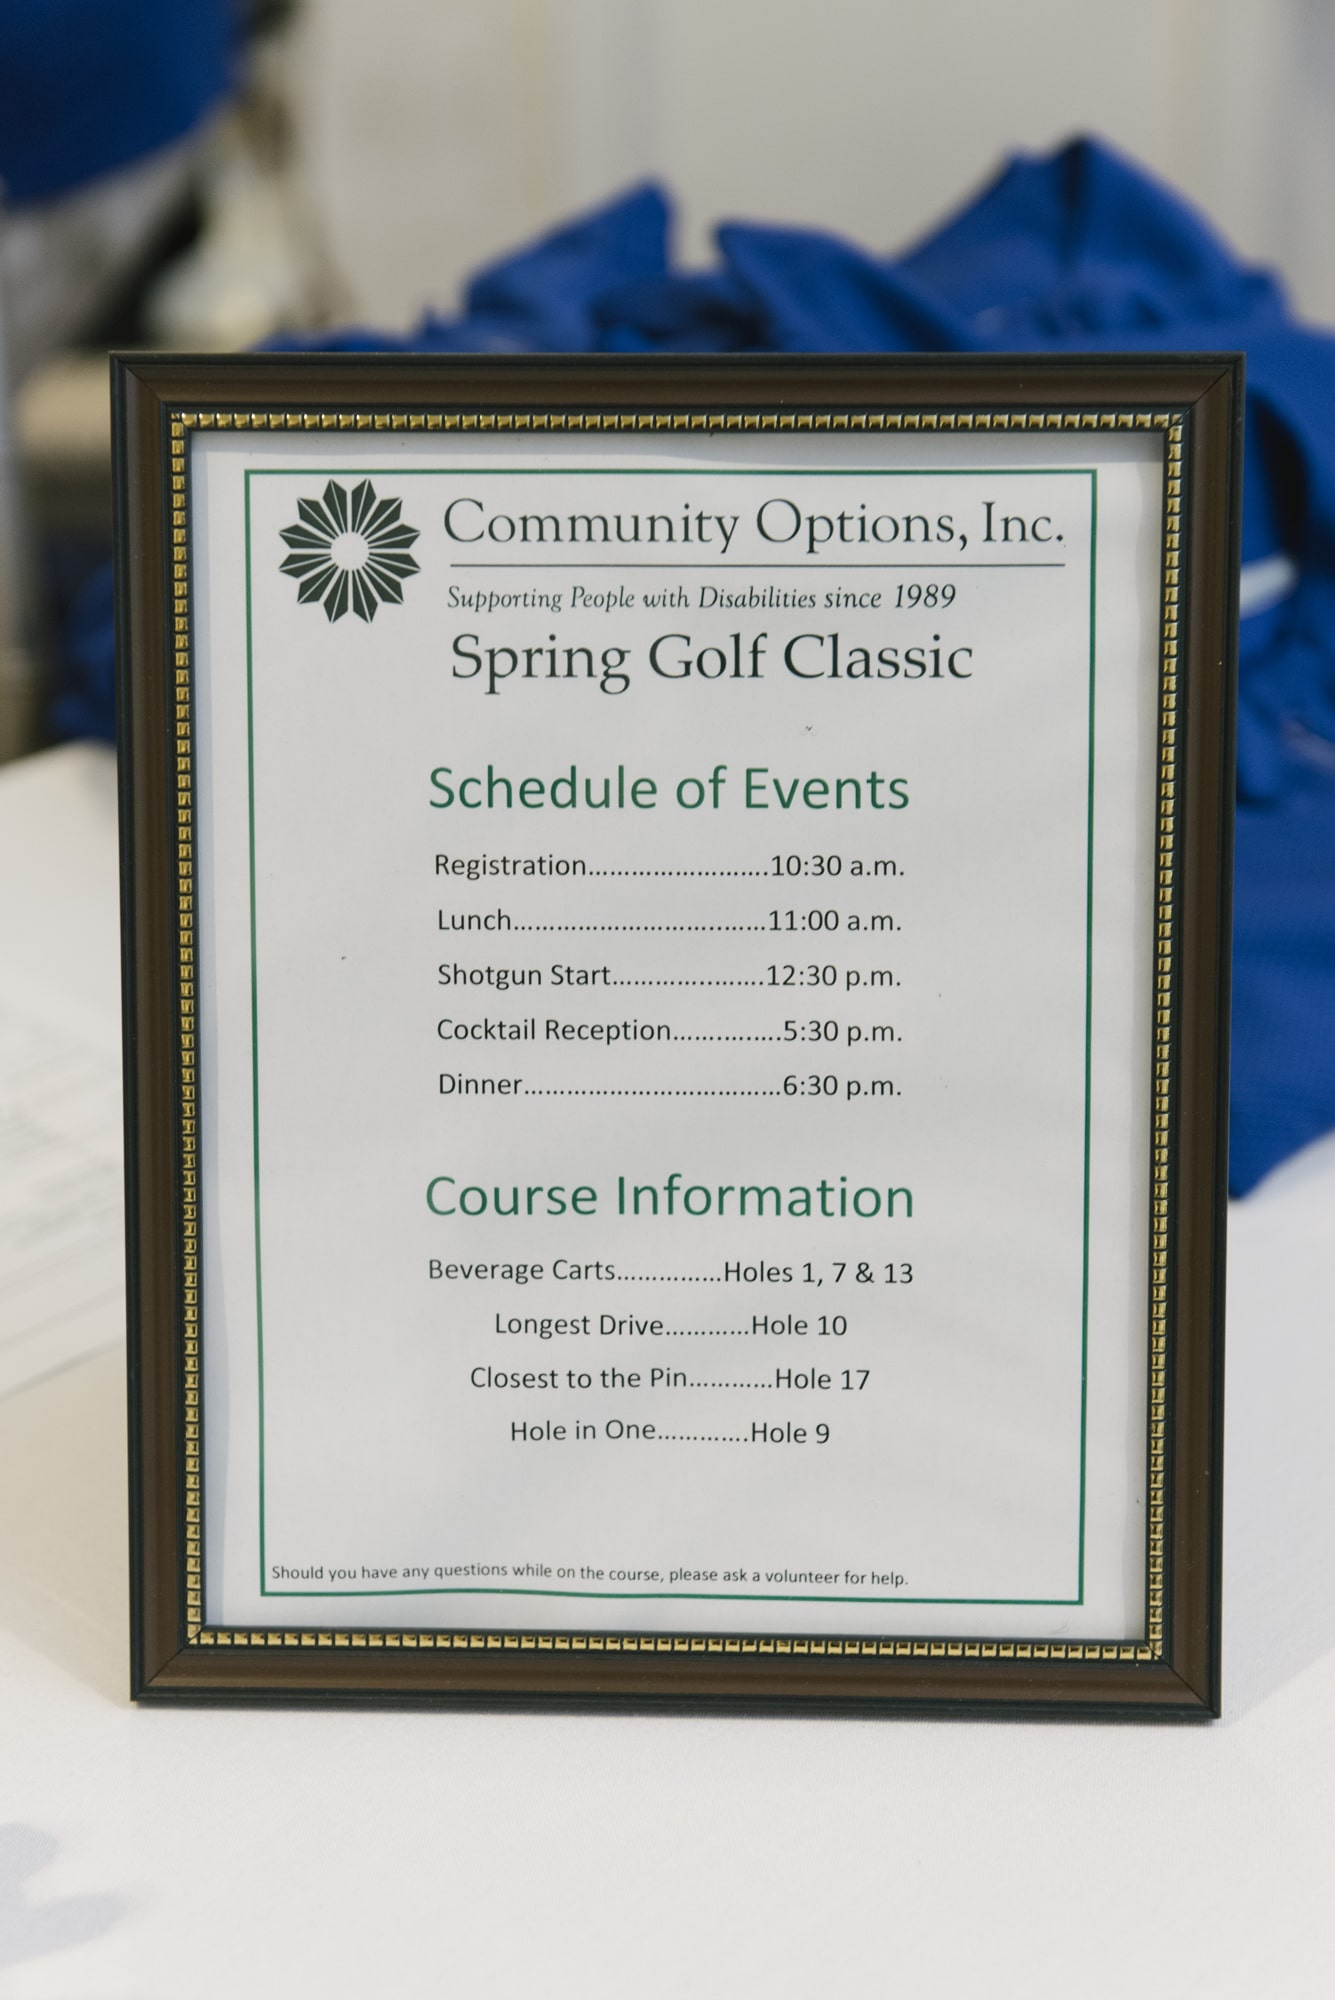 vMay 22, 2017 Community Options, Inc. Spring Golf Classic at Torresdale